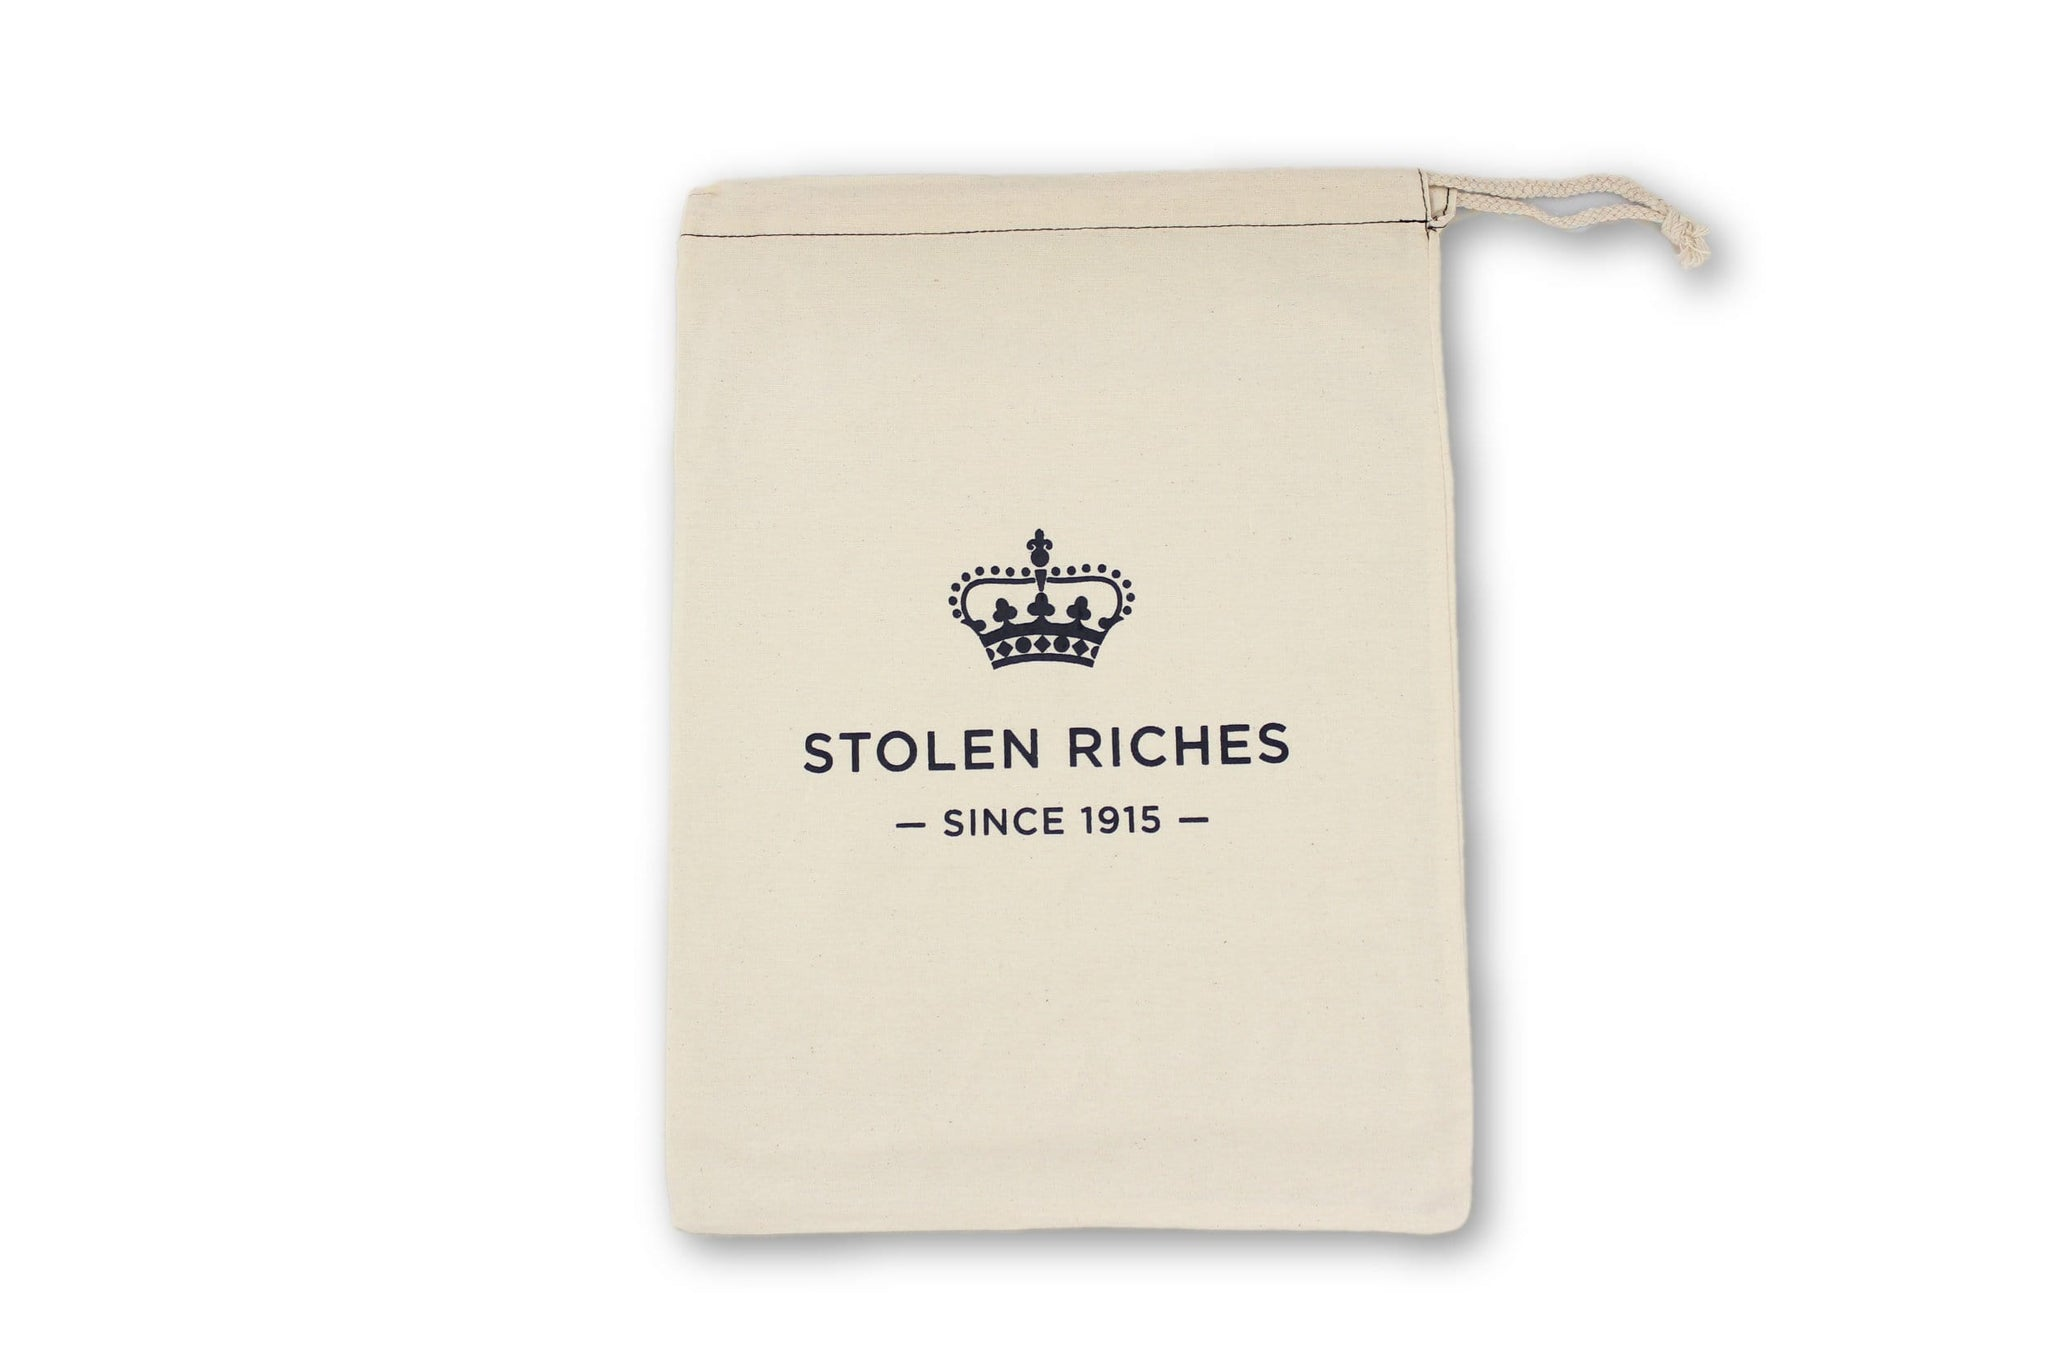 Keep it Clean - Stolen Riches